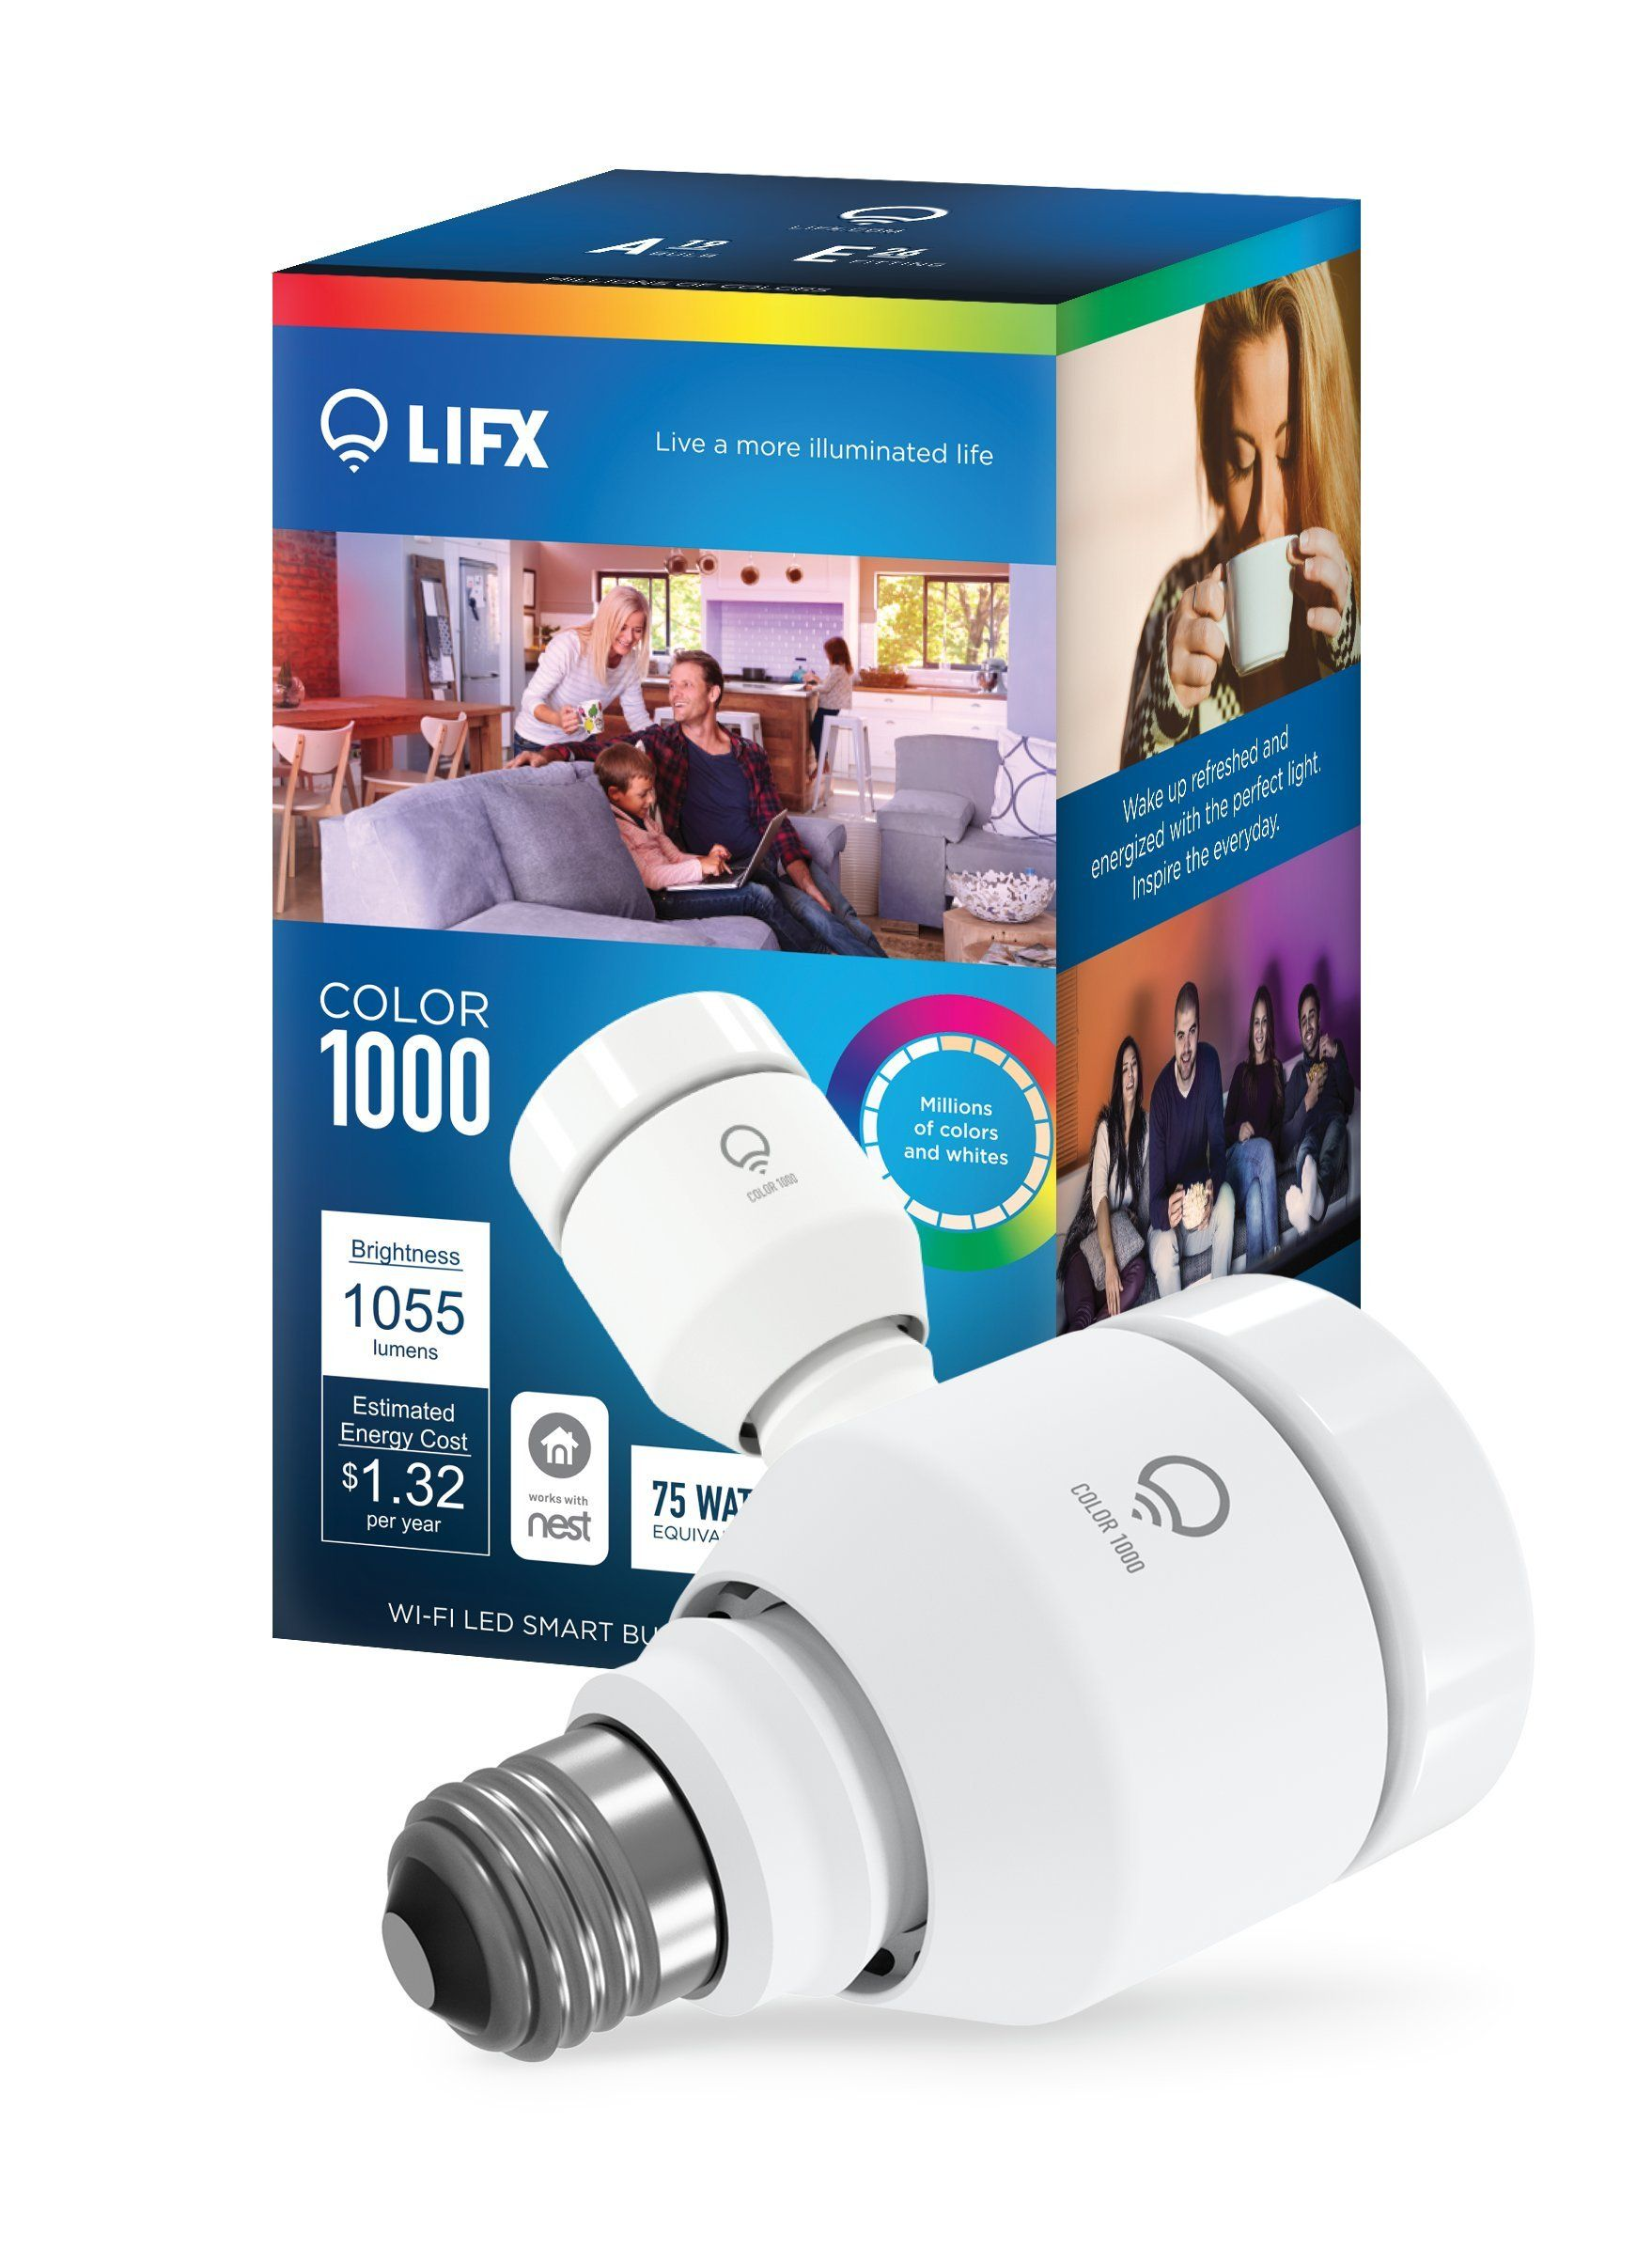 LIFX Color 1000 A19 Wi Fi Smart LED Light Bulb, Adjustable, Multicolor,  Dimmable, No Hub Required     Amazon.com